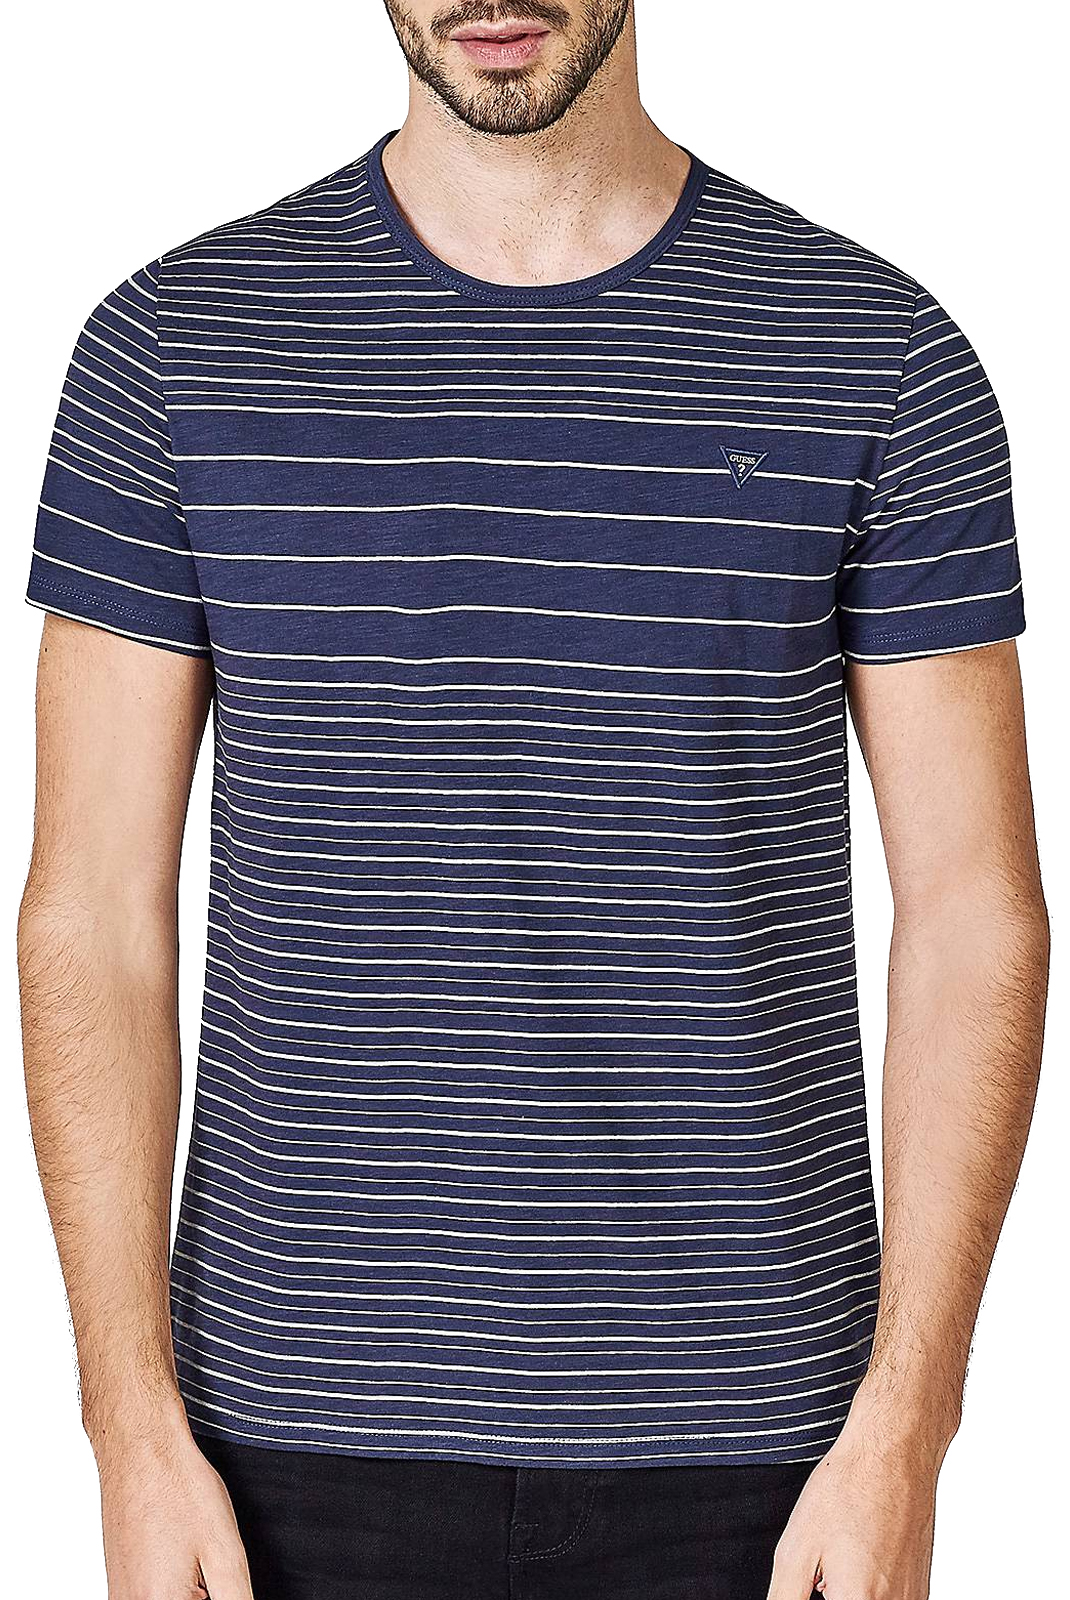 T-S manches courtes  Guess jeans M83I46 K7G80 SU79 NAVY/MIRAGE GREY